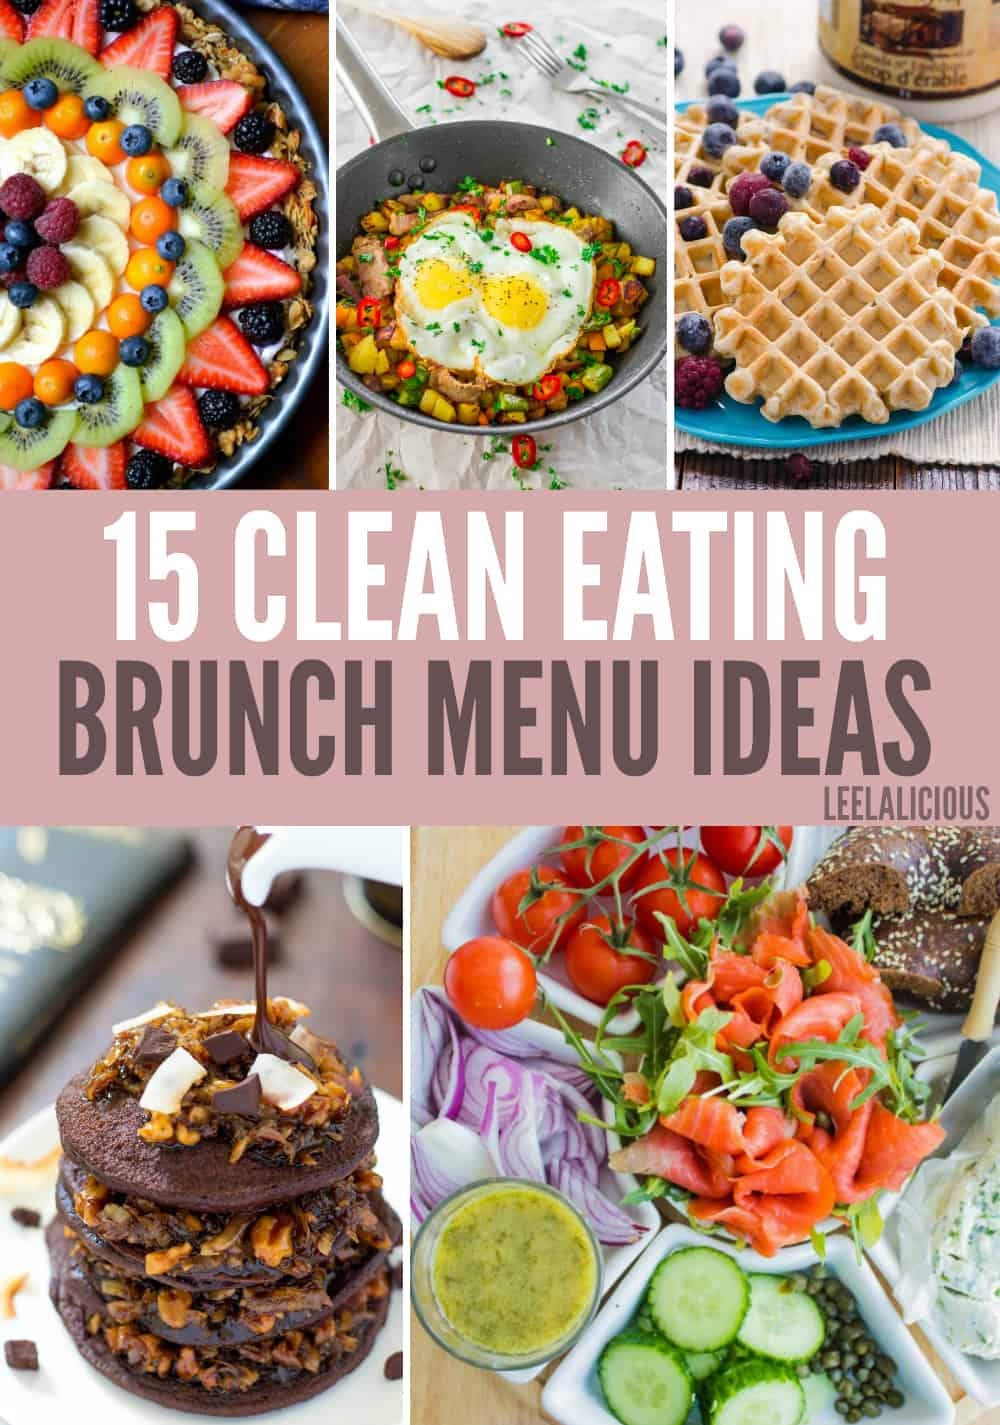 Find some of the best Clean Eating Brunch Menu Ideas for a delicious and healthy Mother's Day, Easter or regular Sunday morning. From pancakes and waffles to quick breads and eggs many different ways.